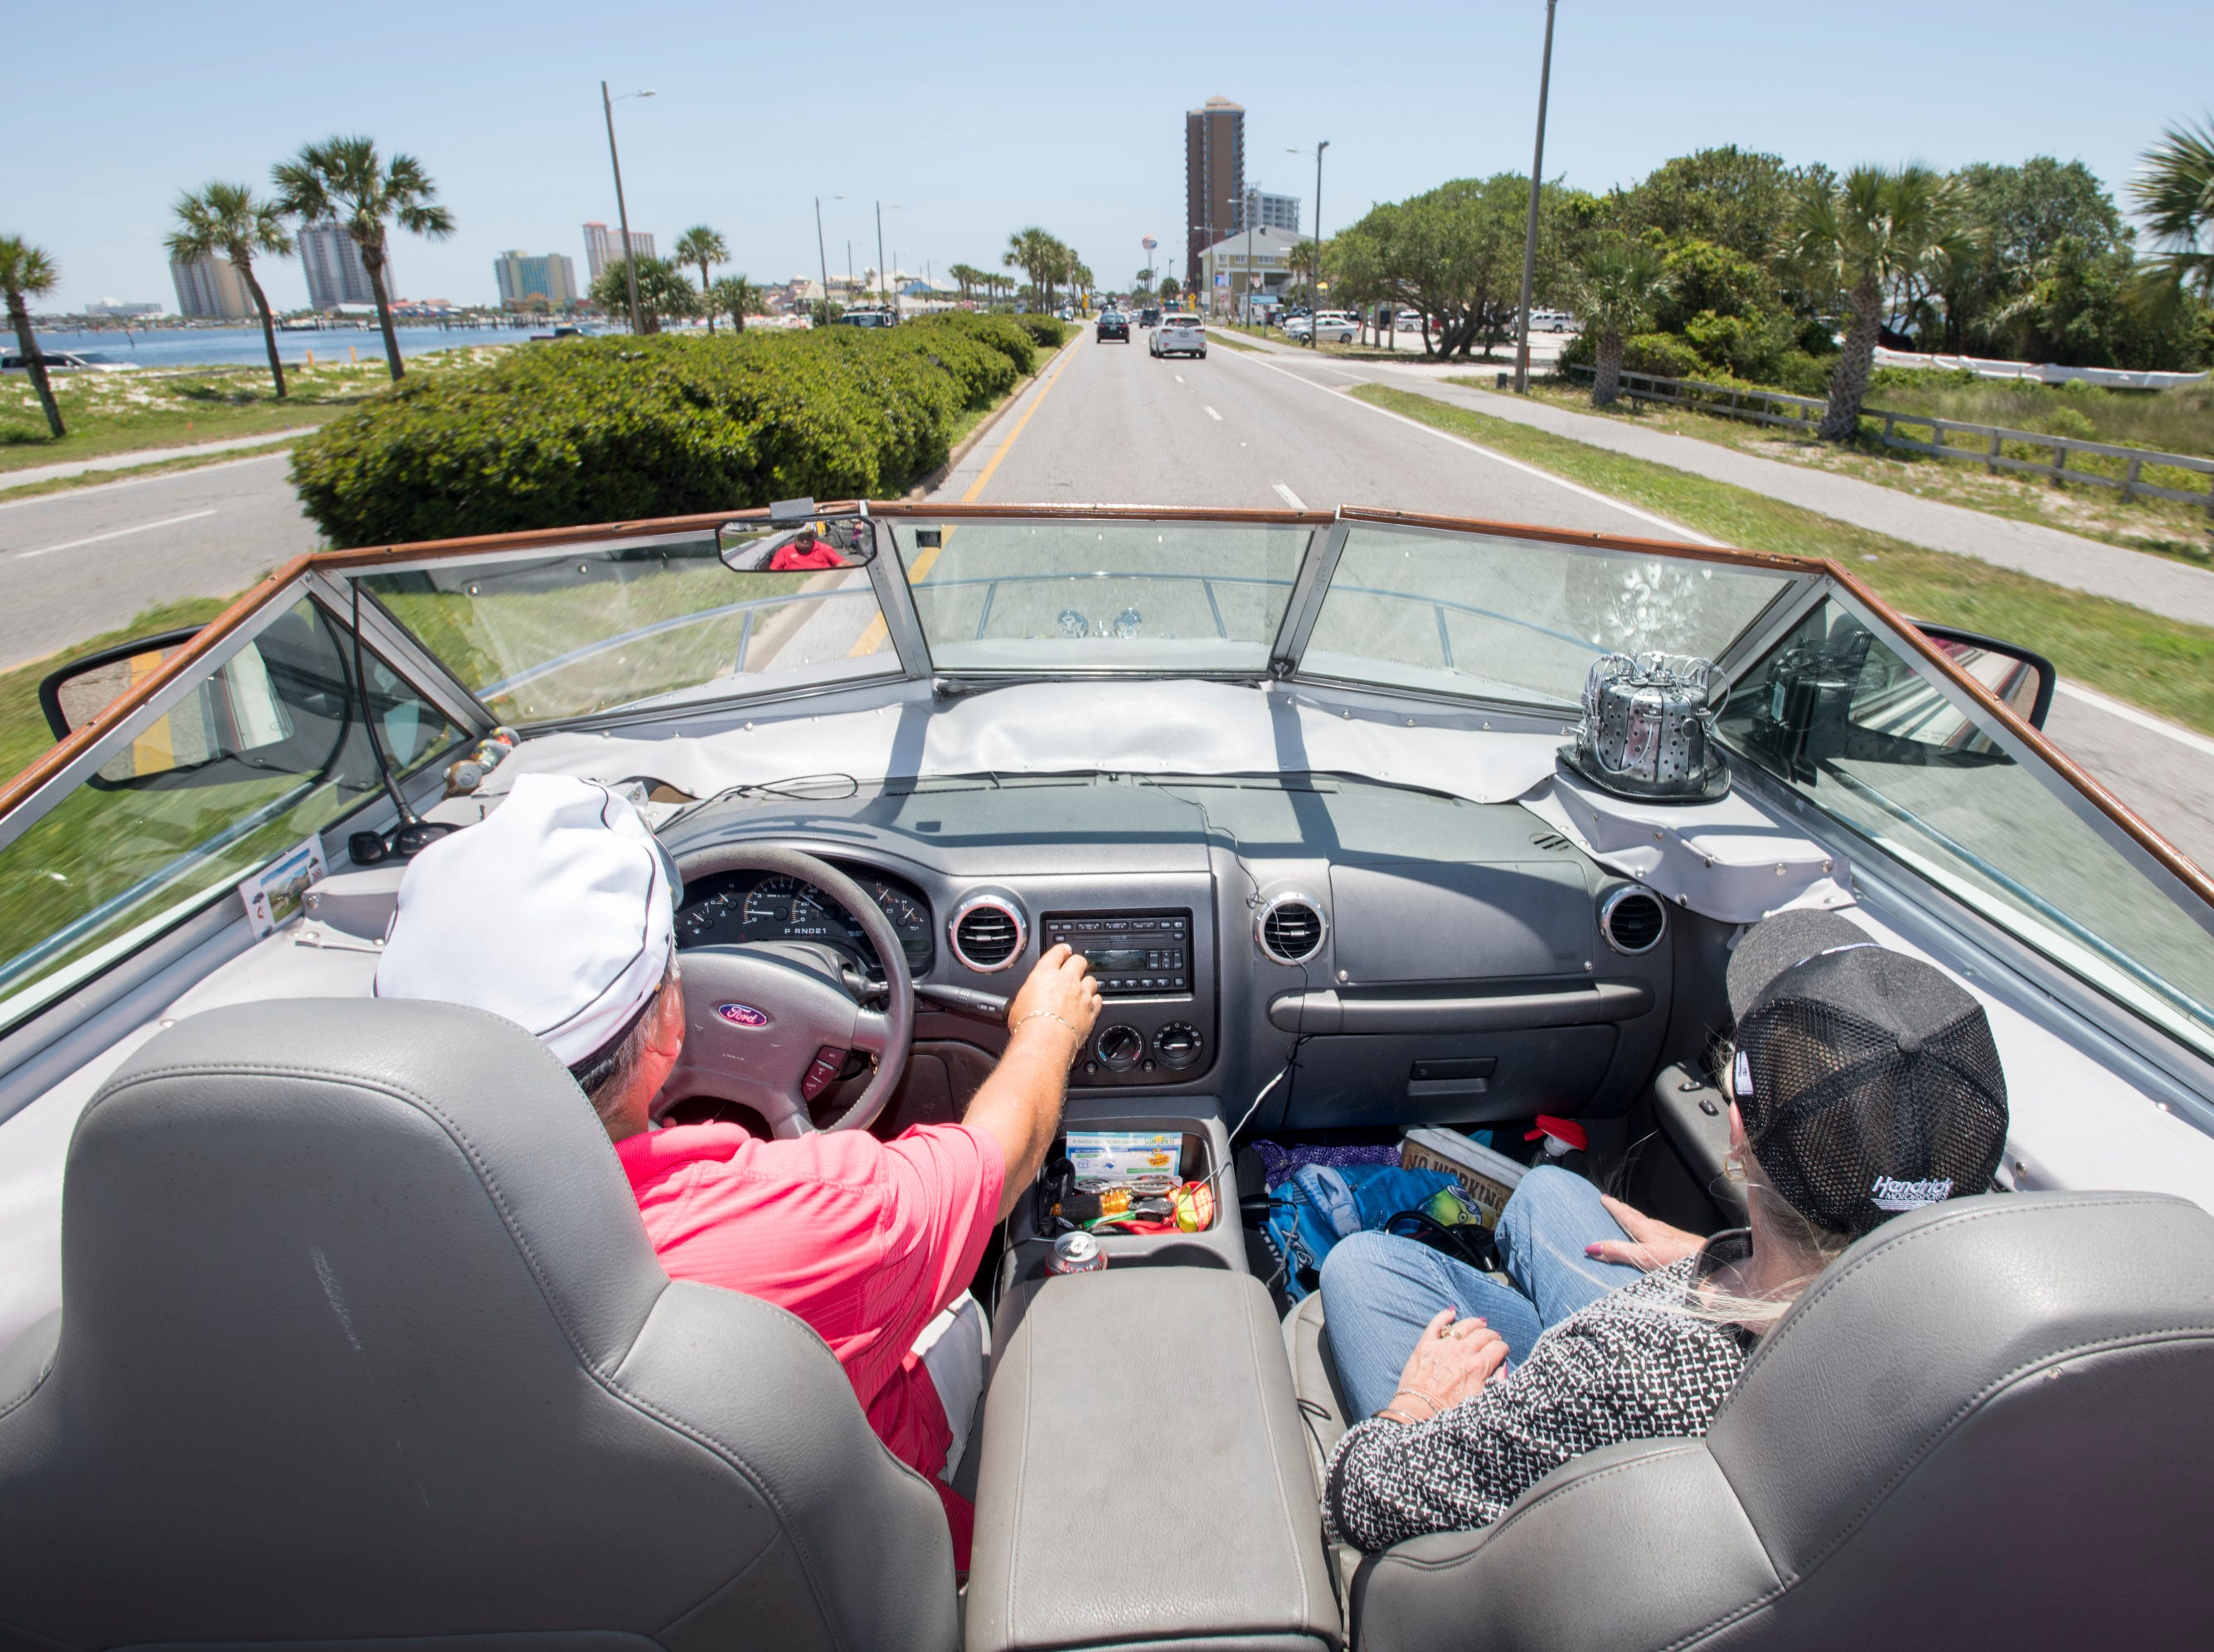 Gerry and Karen Moore cruise along Pensacola Beach Blvd. in their Boat Car in Pensacola on Tuesday, May 7, 2019.  The vehicle is a  1986 Chris Craft 210 Scorpion boat - 2003 Ford Expedition SUV hybrid created by Gerry.